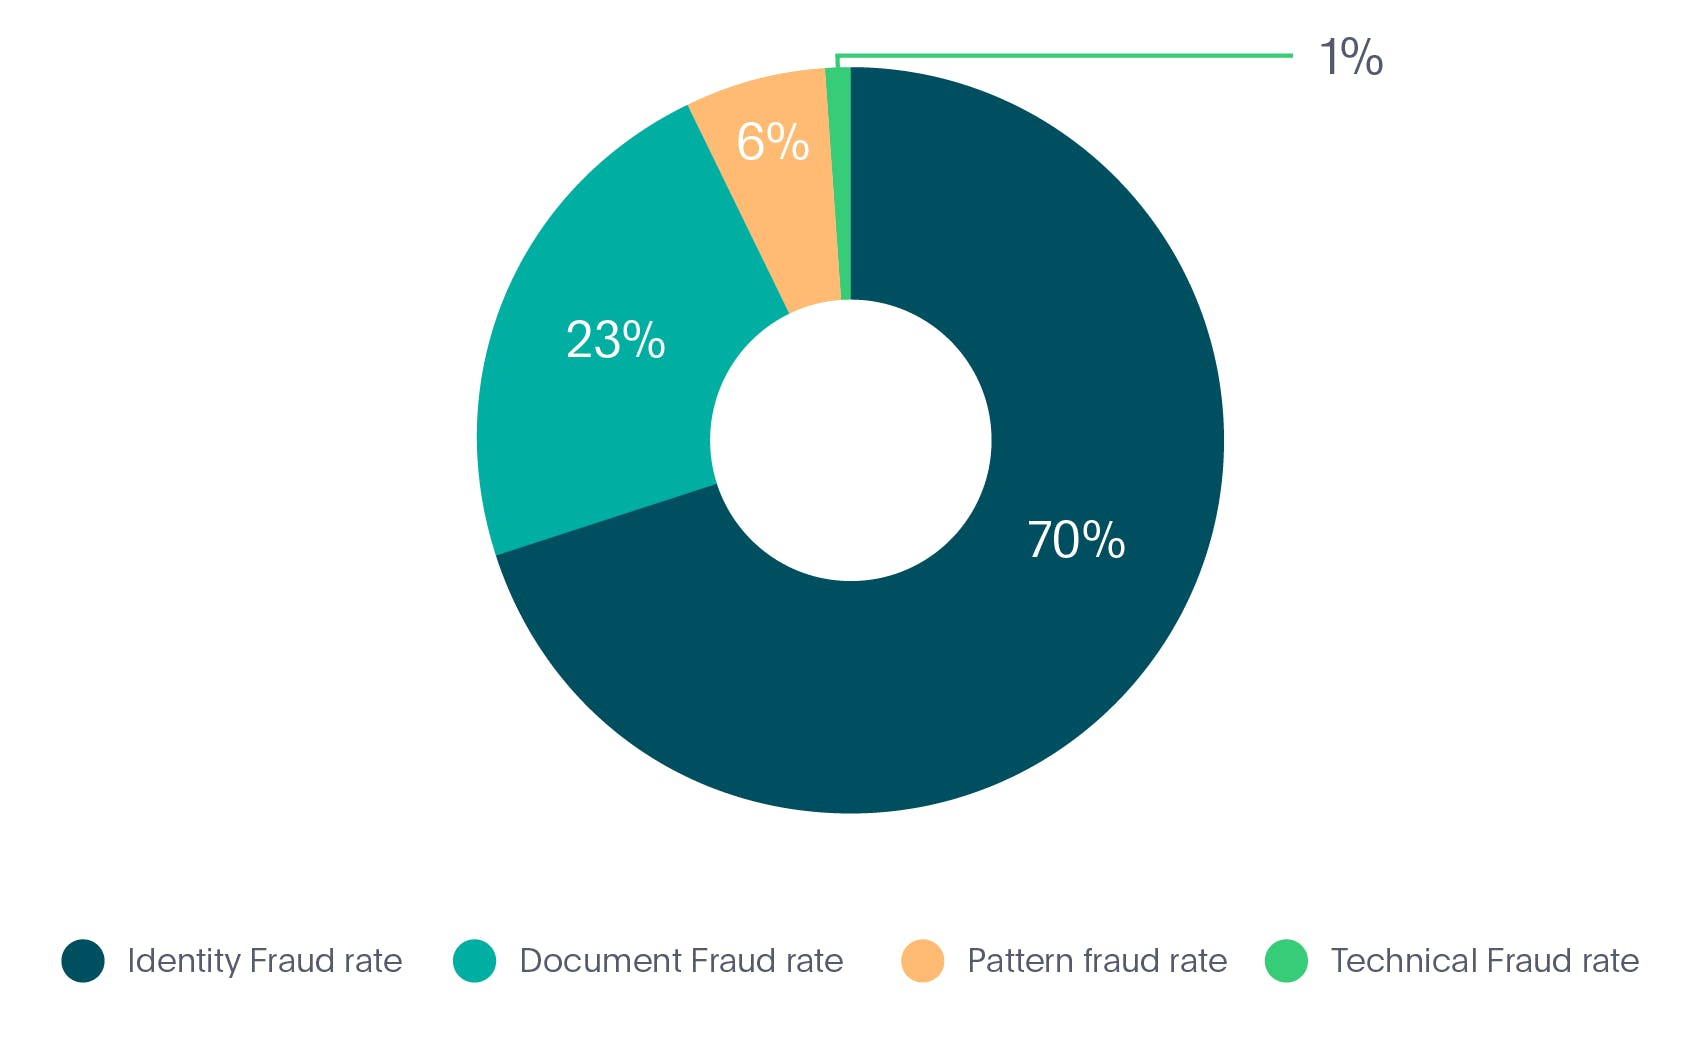 Identity fraud types in Fintech industry in 2020